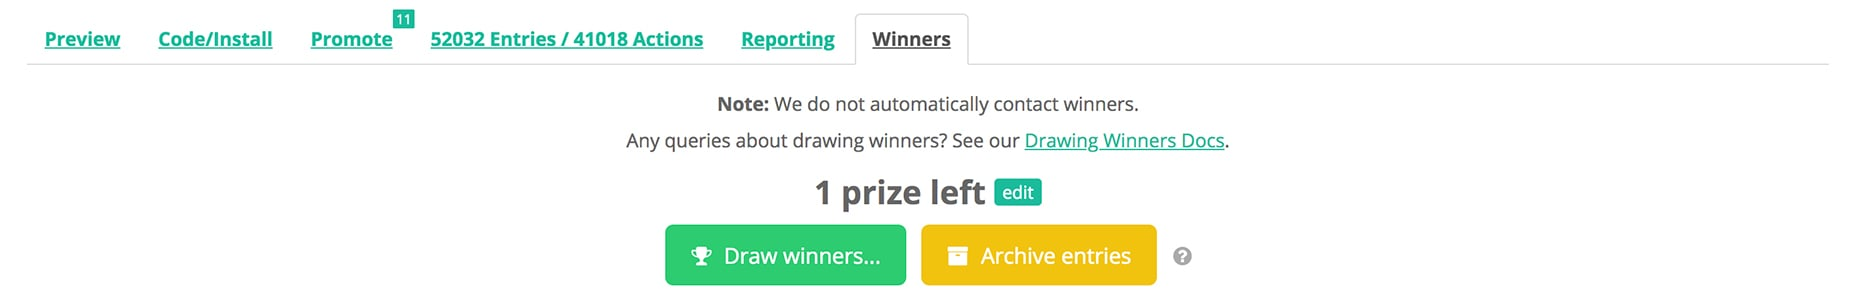 gleam-drawing-winners